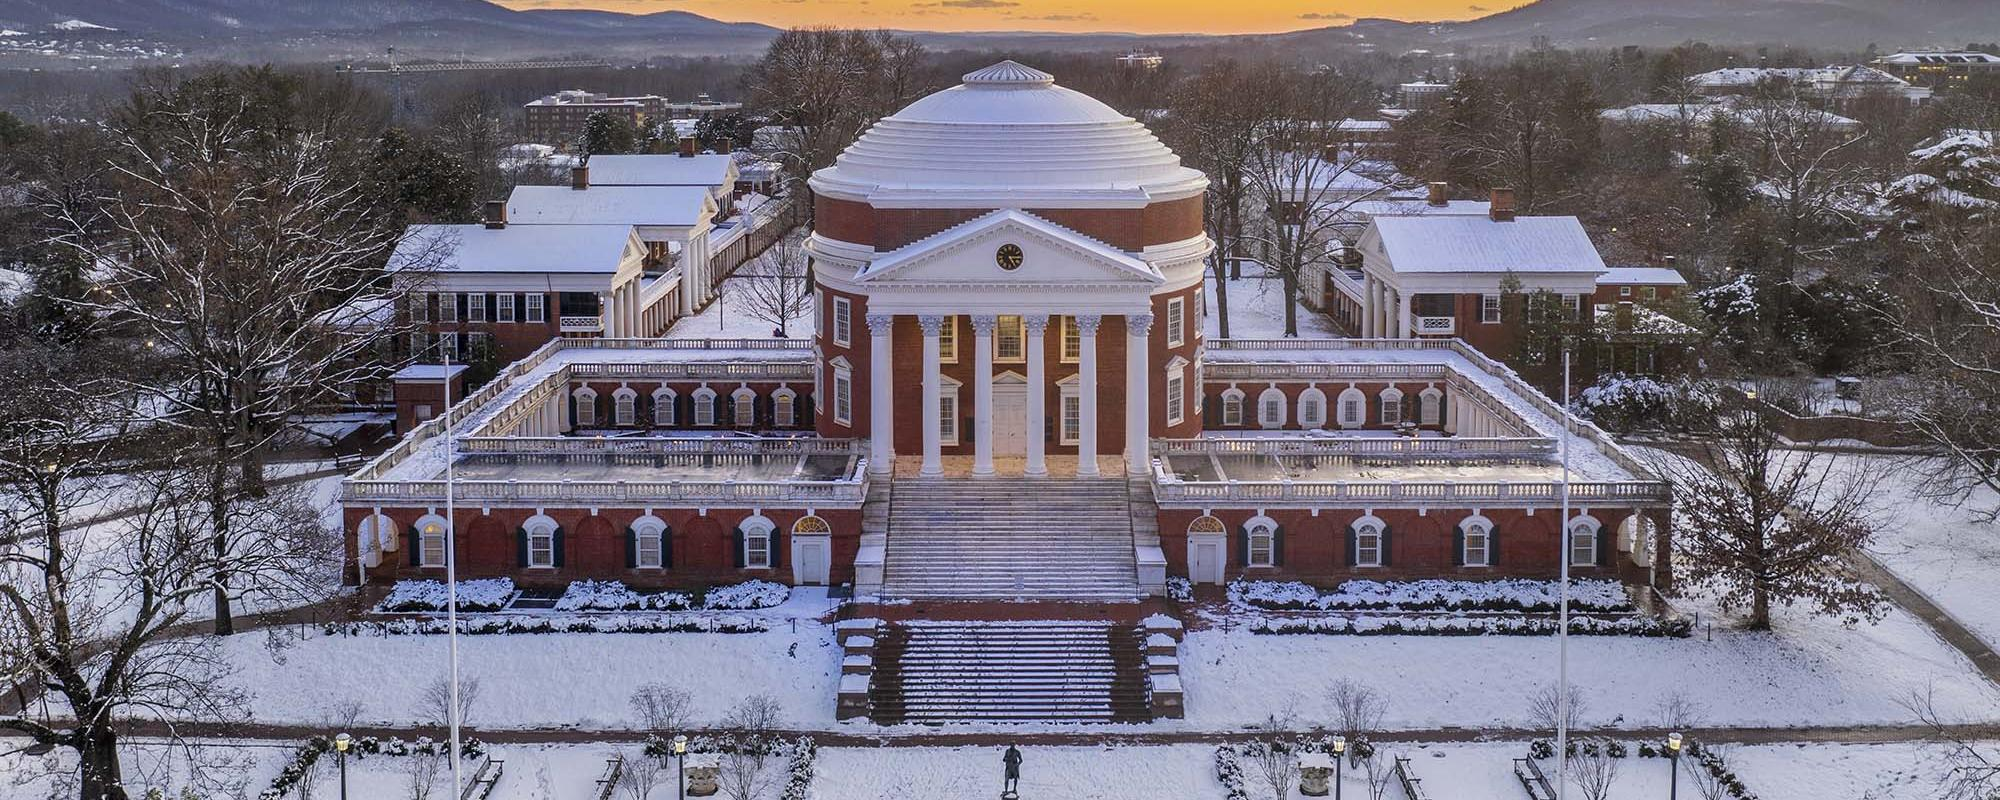 Rotunda in Snow